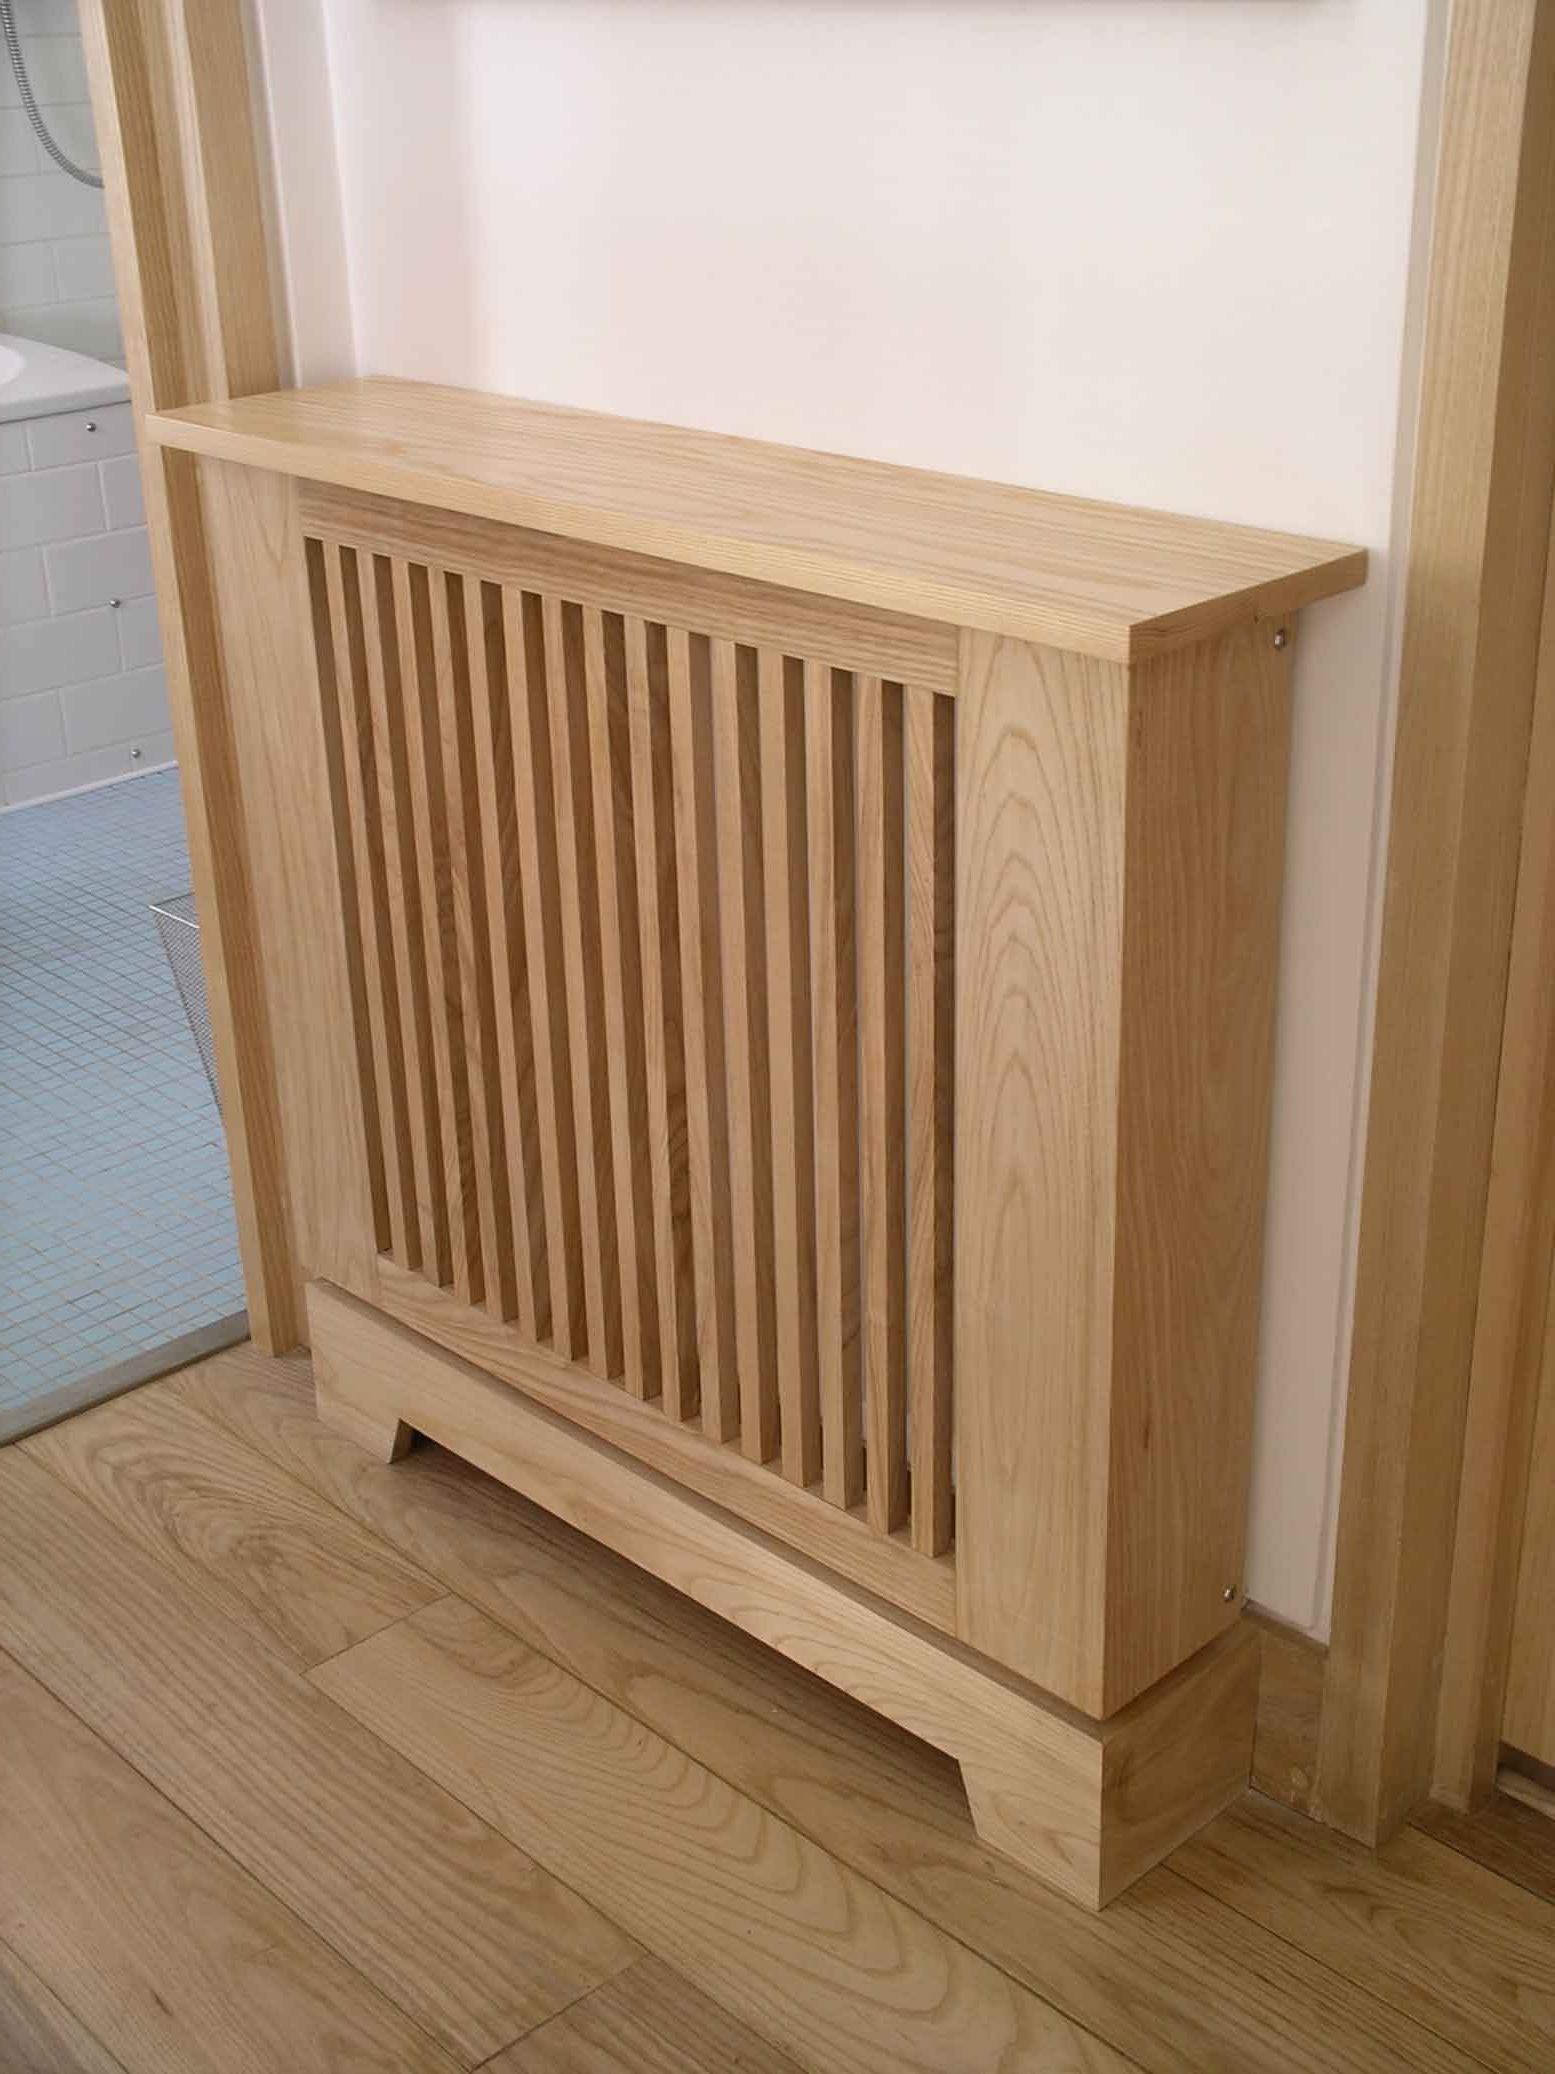 Popular Radiator Cabinet Bespoke Madepeter Henderson Furniture In Radiator Cupboards (View 9 of 15)